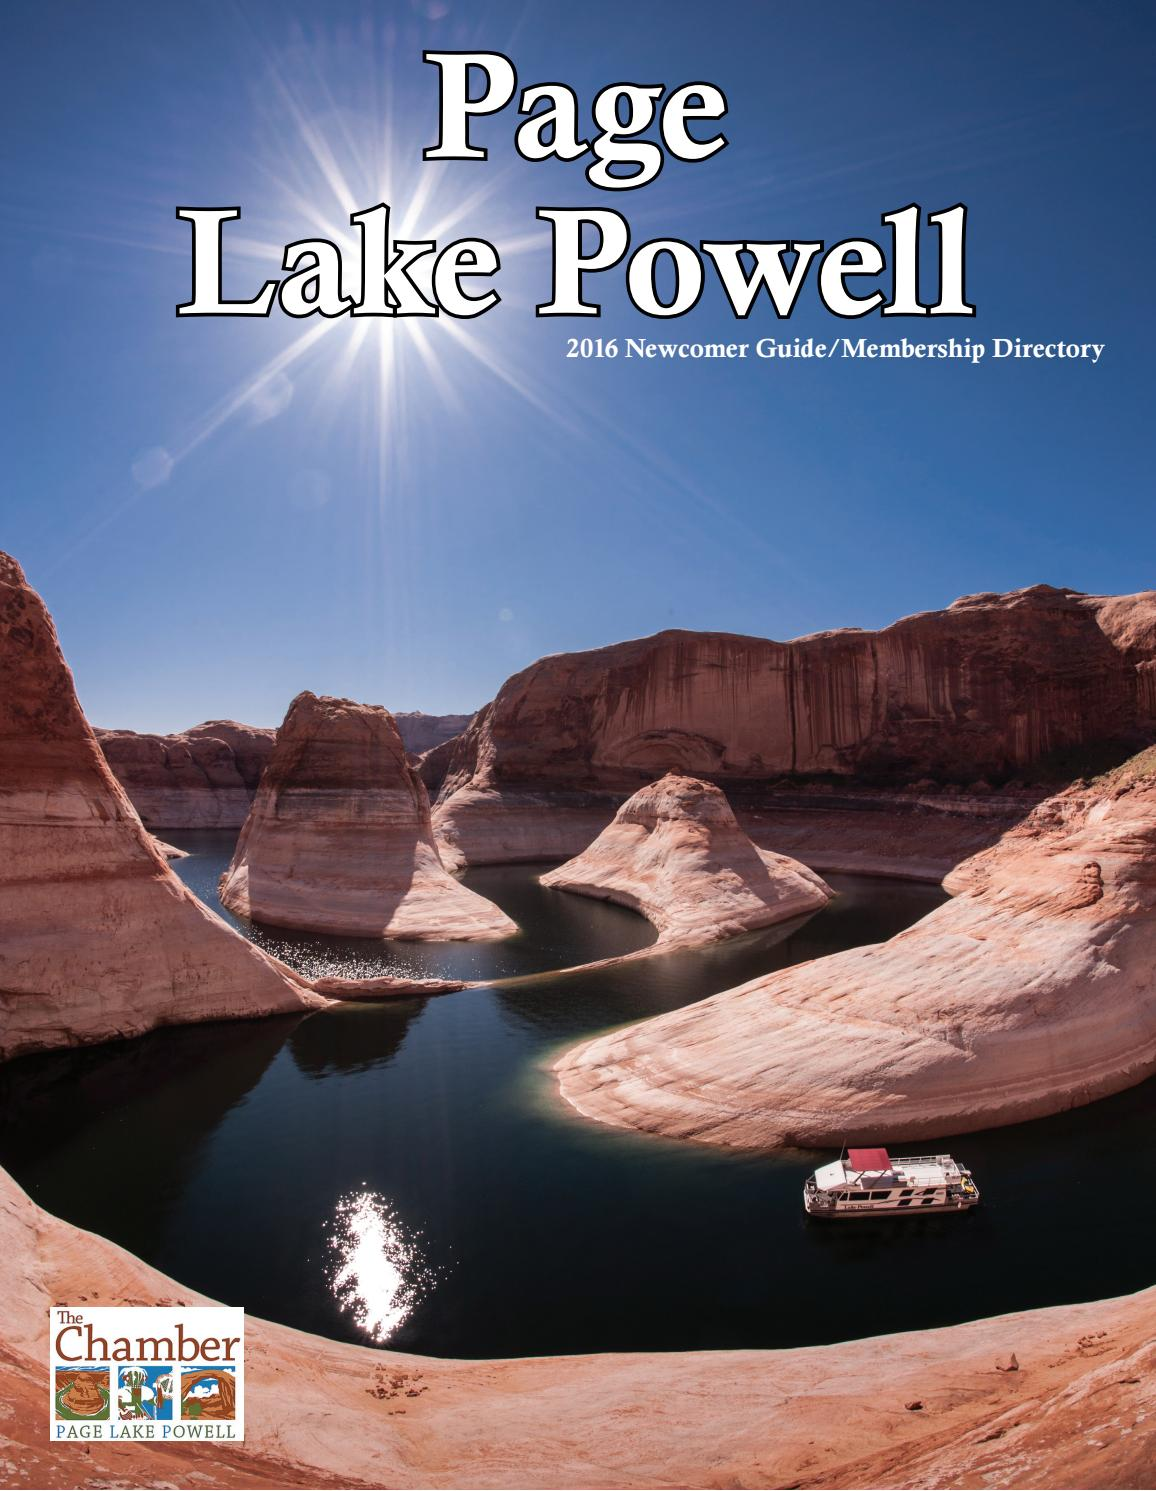 2016 The Chamber Page Lake Powell Membership Directory